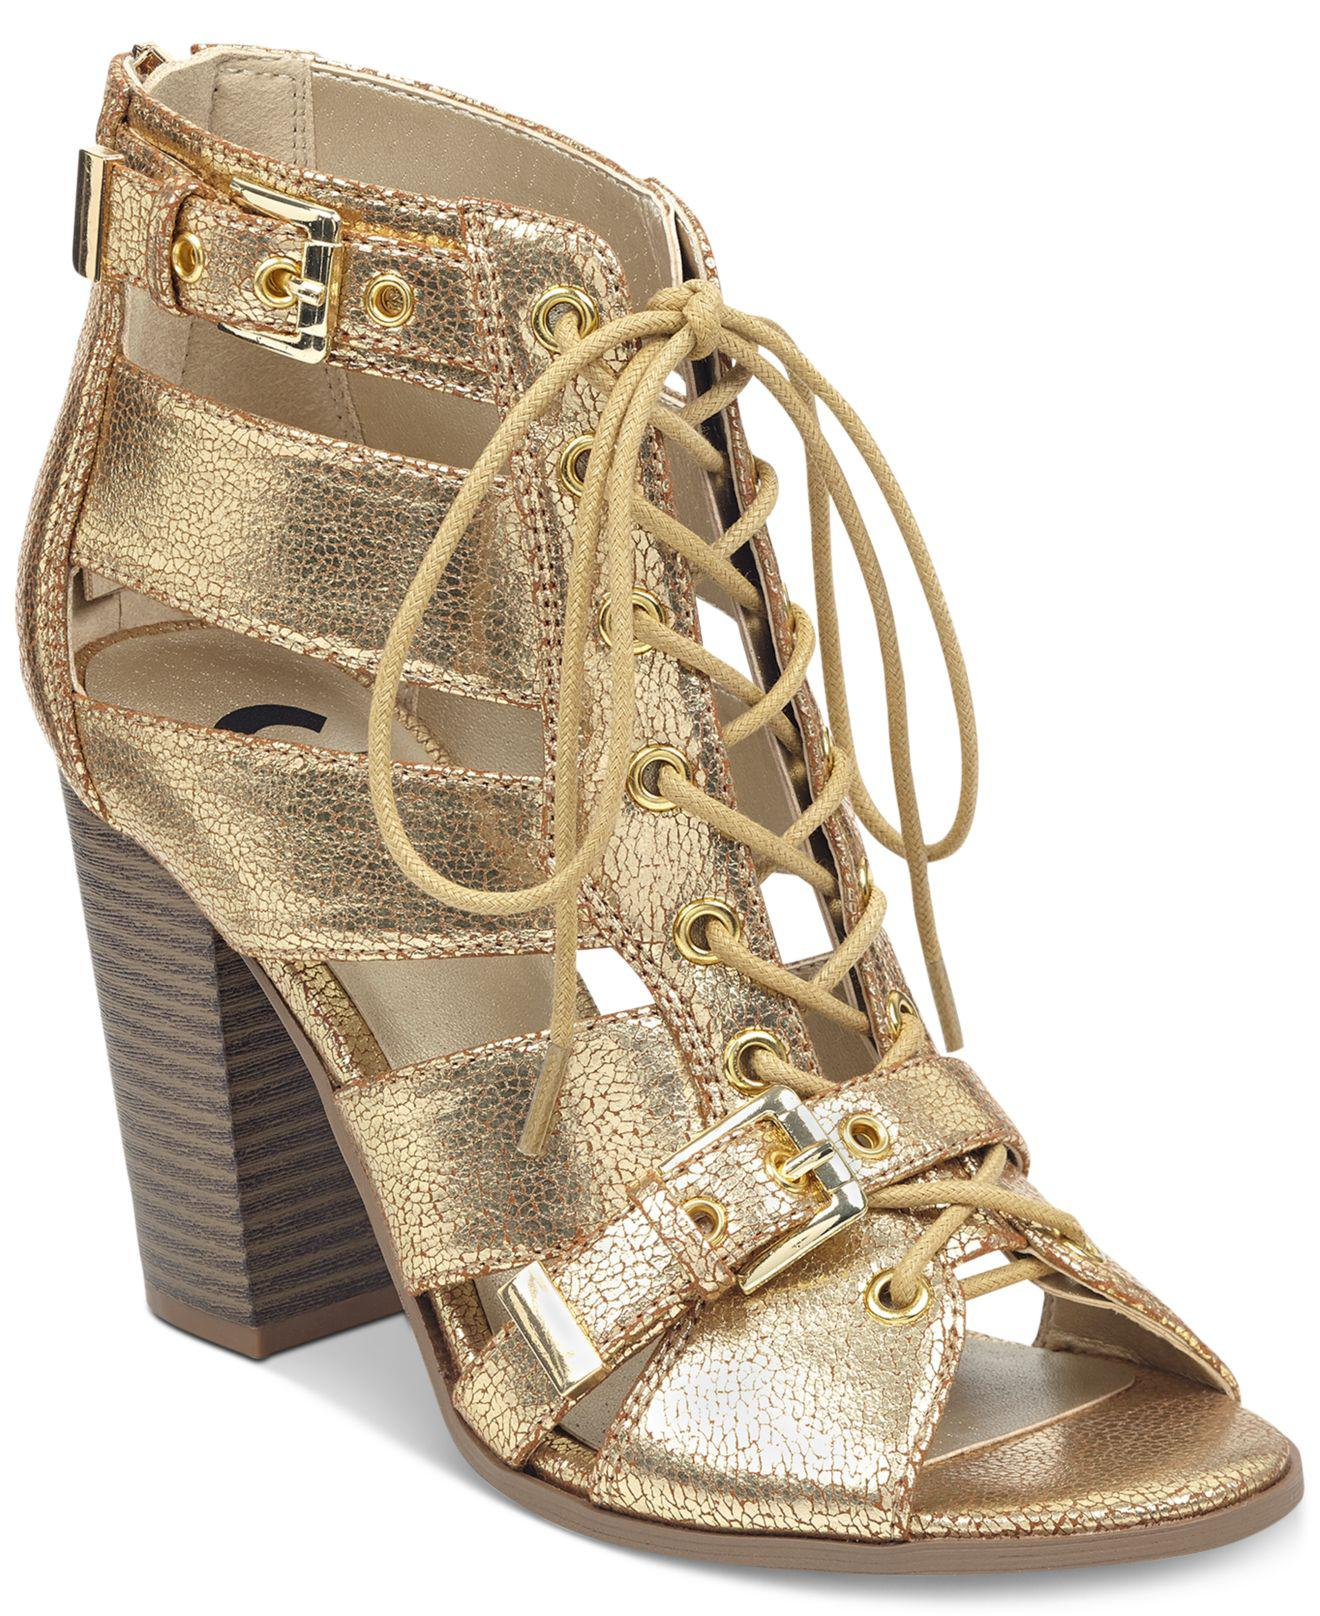 G by Guess Portlyn Dress Sandals in Gold (Metallic) - Lyst